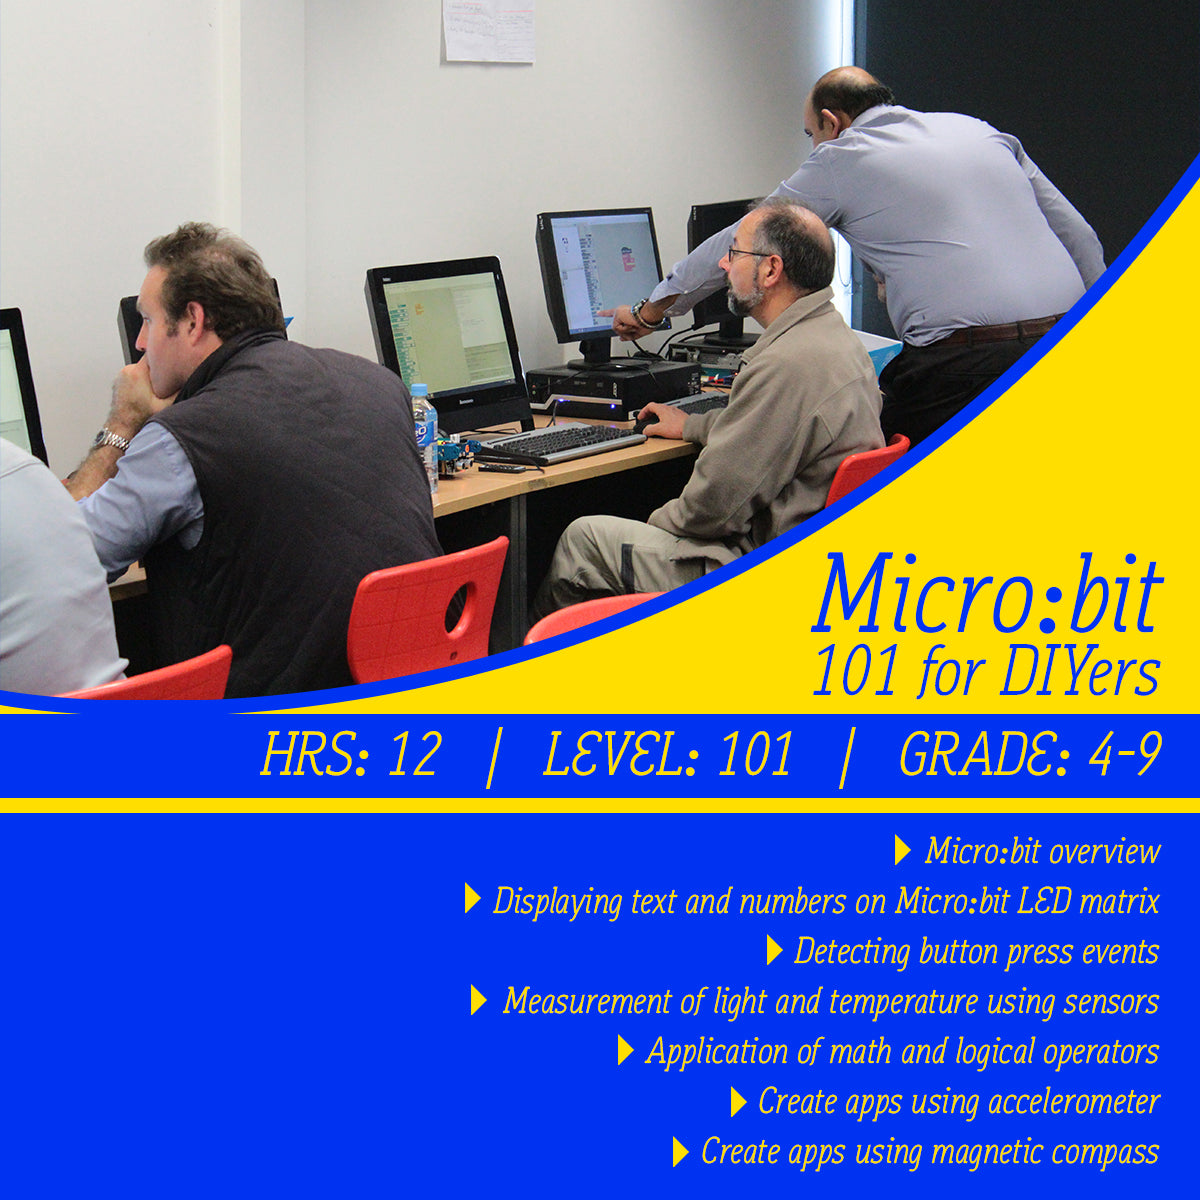 Micro:bit online course 101 for DIYers